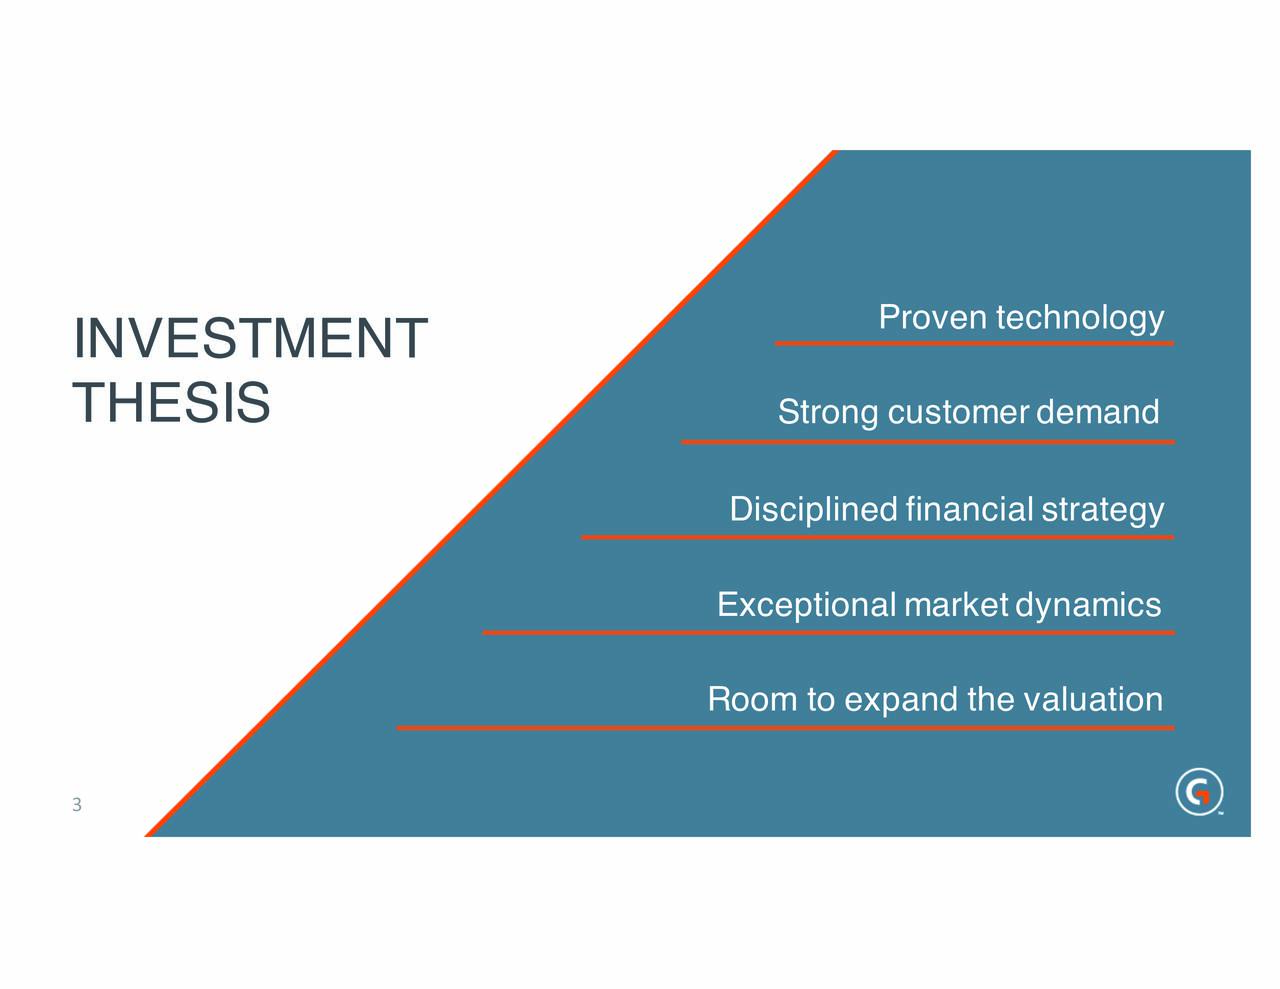 INVESTMENT THESIS Strong customer demand Disciplined financial strategy Exceptional market dynamics Room to expand the valuation 3